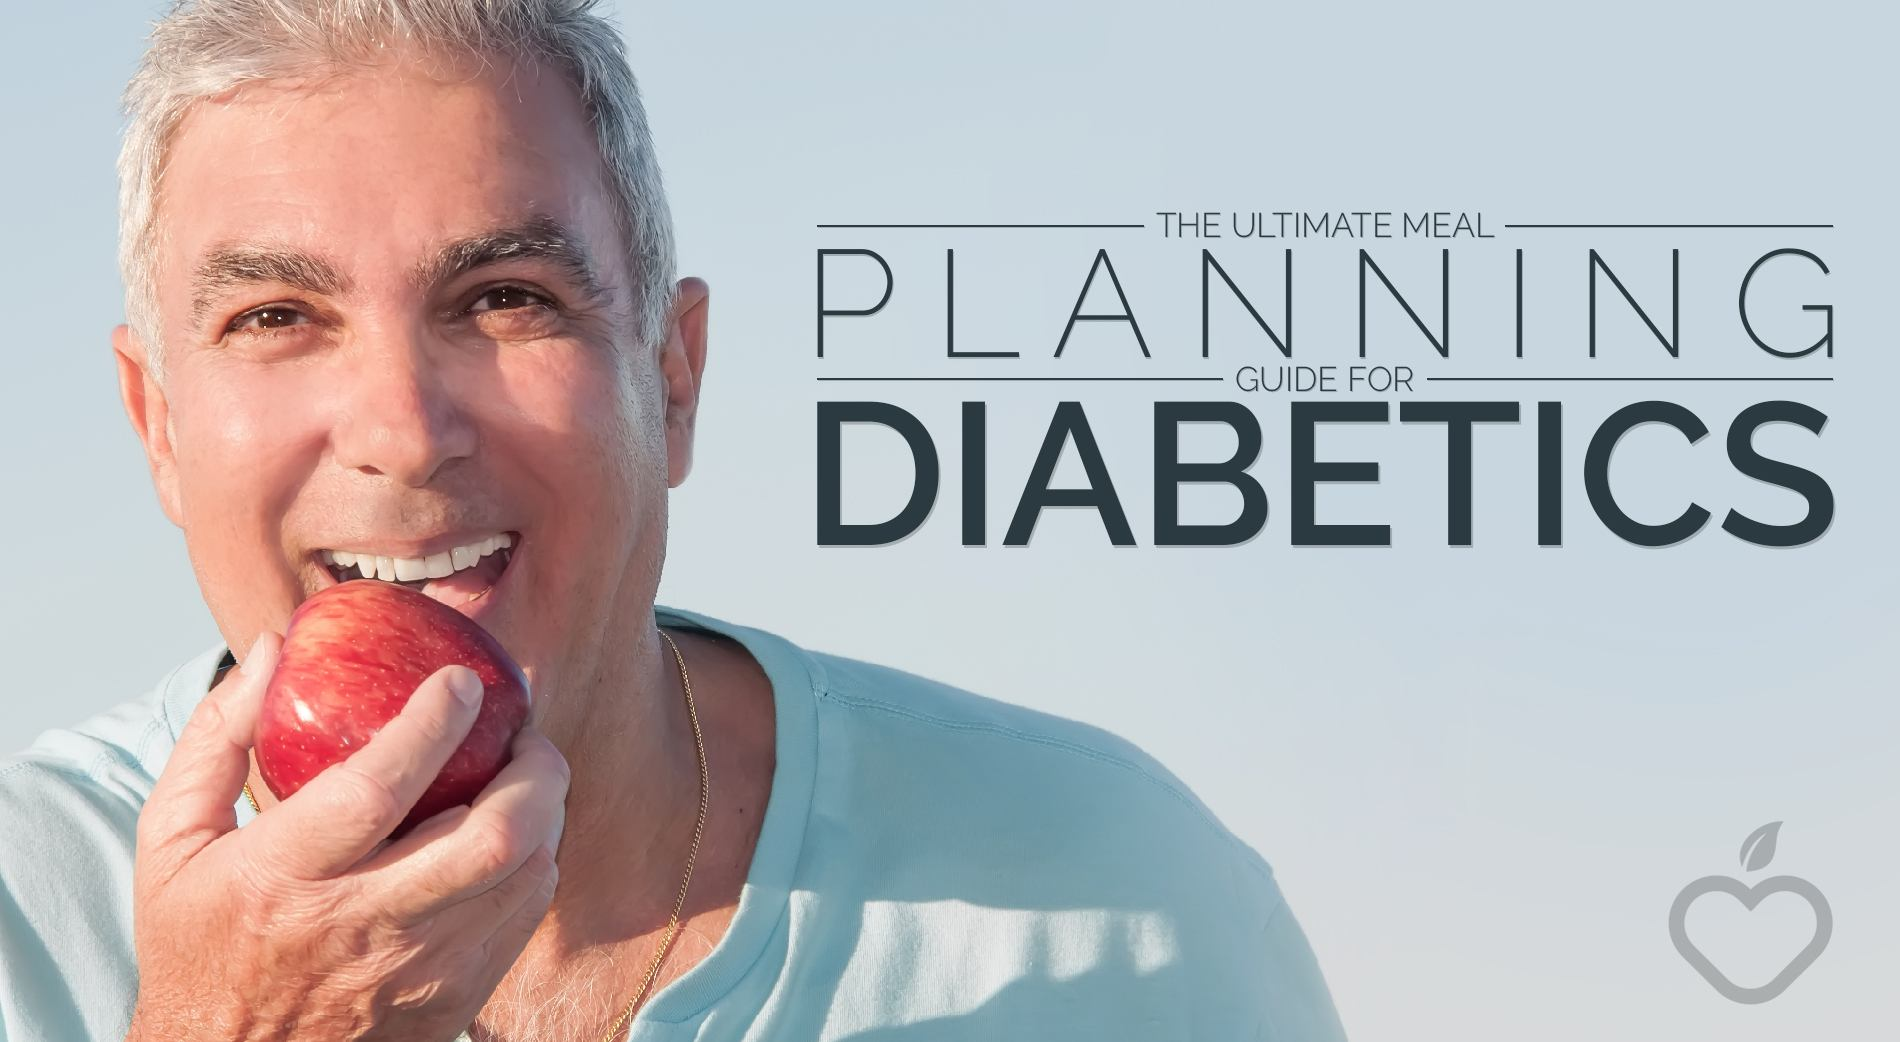 Diabetics Image Design 1 - The Ultimate Meal Planning Guide For Diabetics